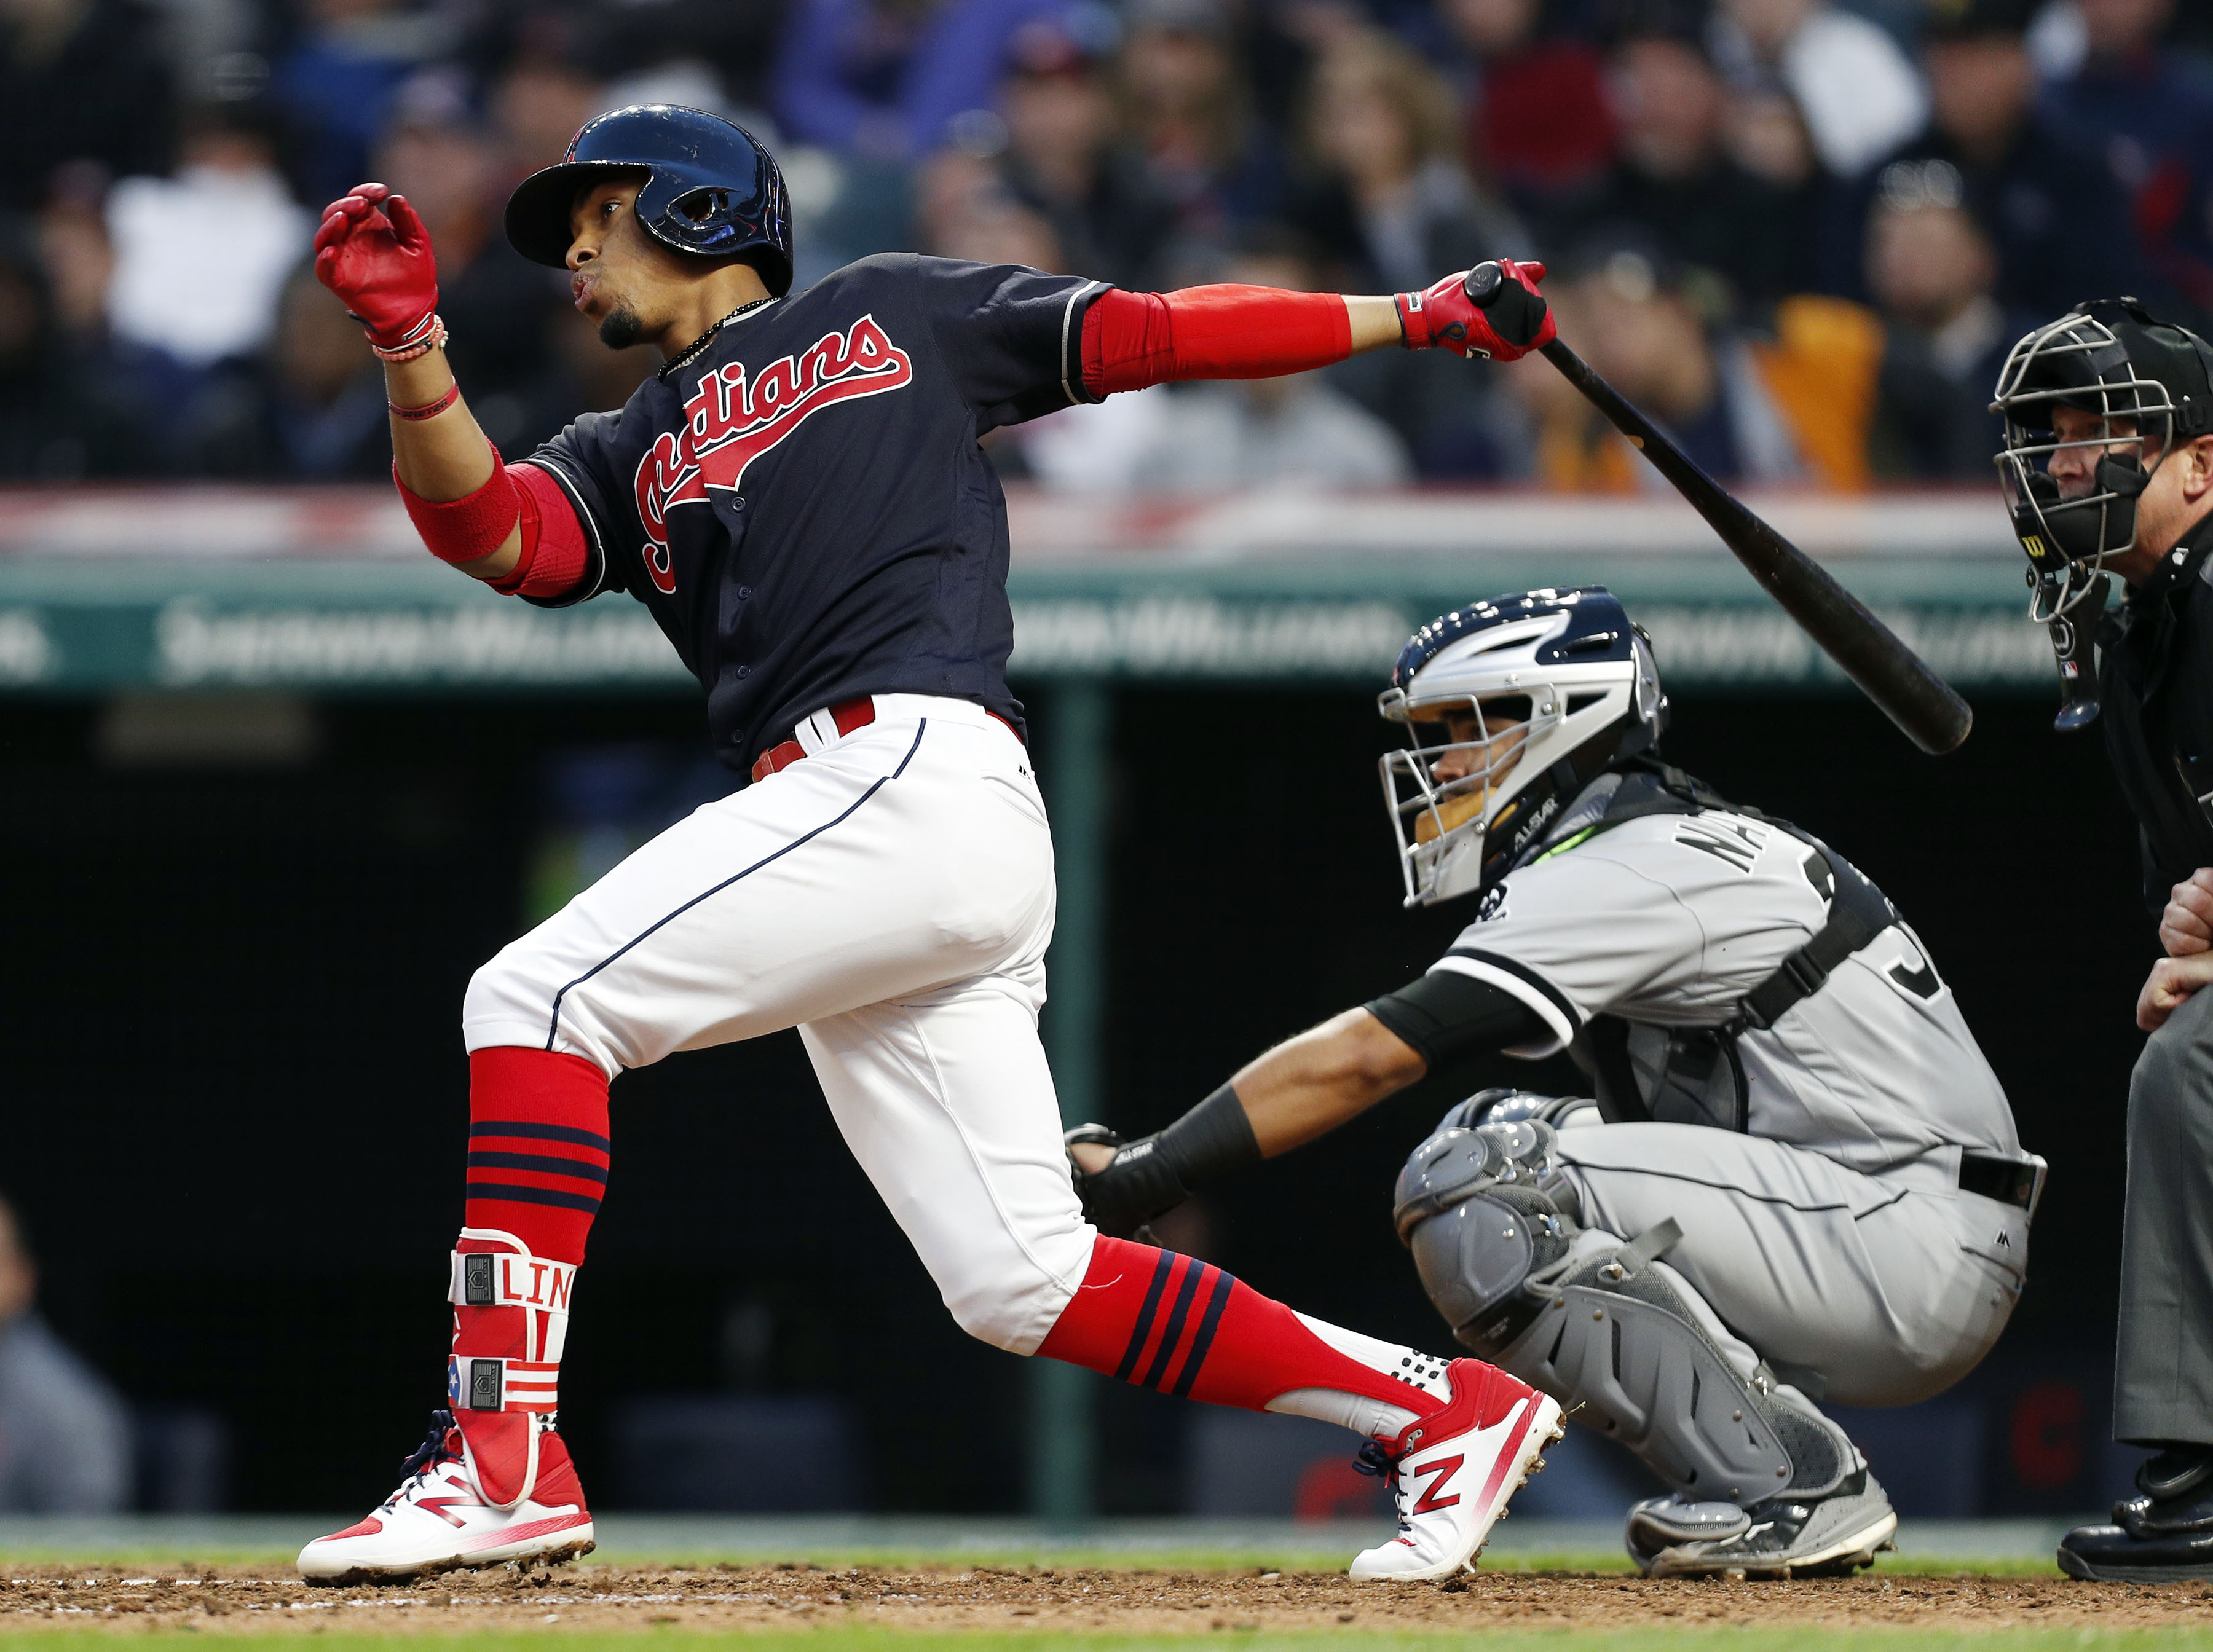 Is Francisco Lindor Adding Legit Power to His Arsenal?